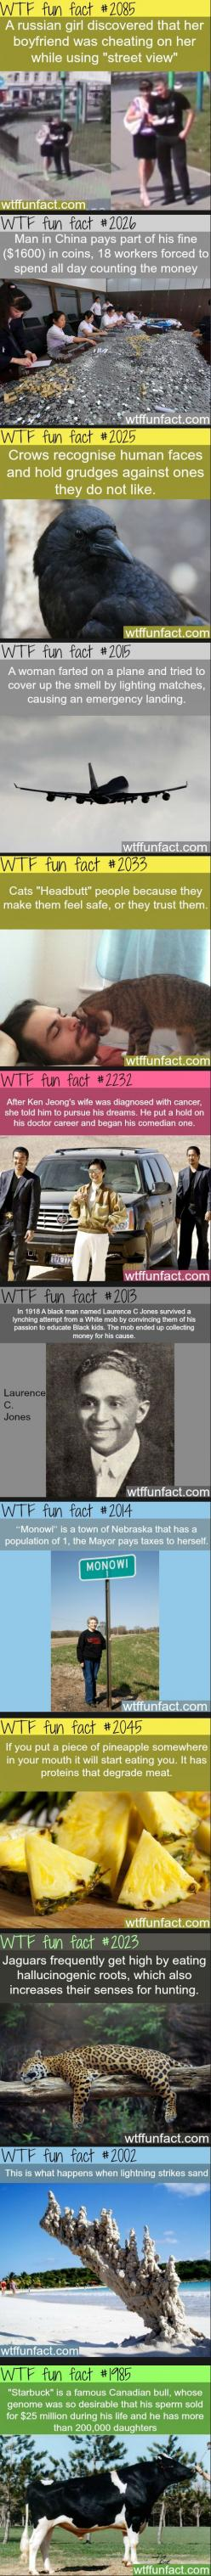 A few fun facts  // funny pictures - funny photos - funny images - funny pics - funny quotes - #lol #humor #funnypictures: Random Fact, Wtf Fun Fact, Wtffacts, Humor Funnypictures, Wtffunfacts, Funny Quotes